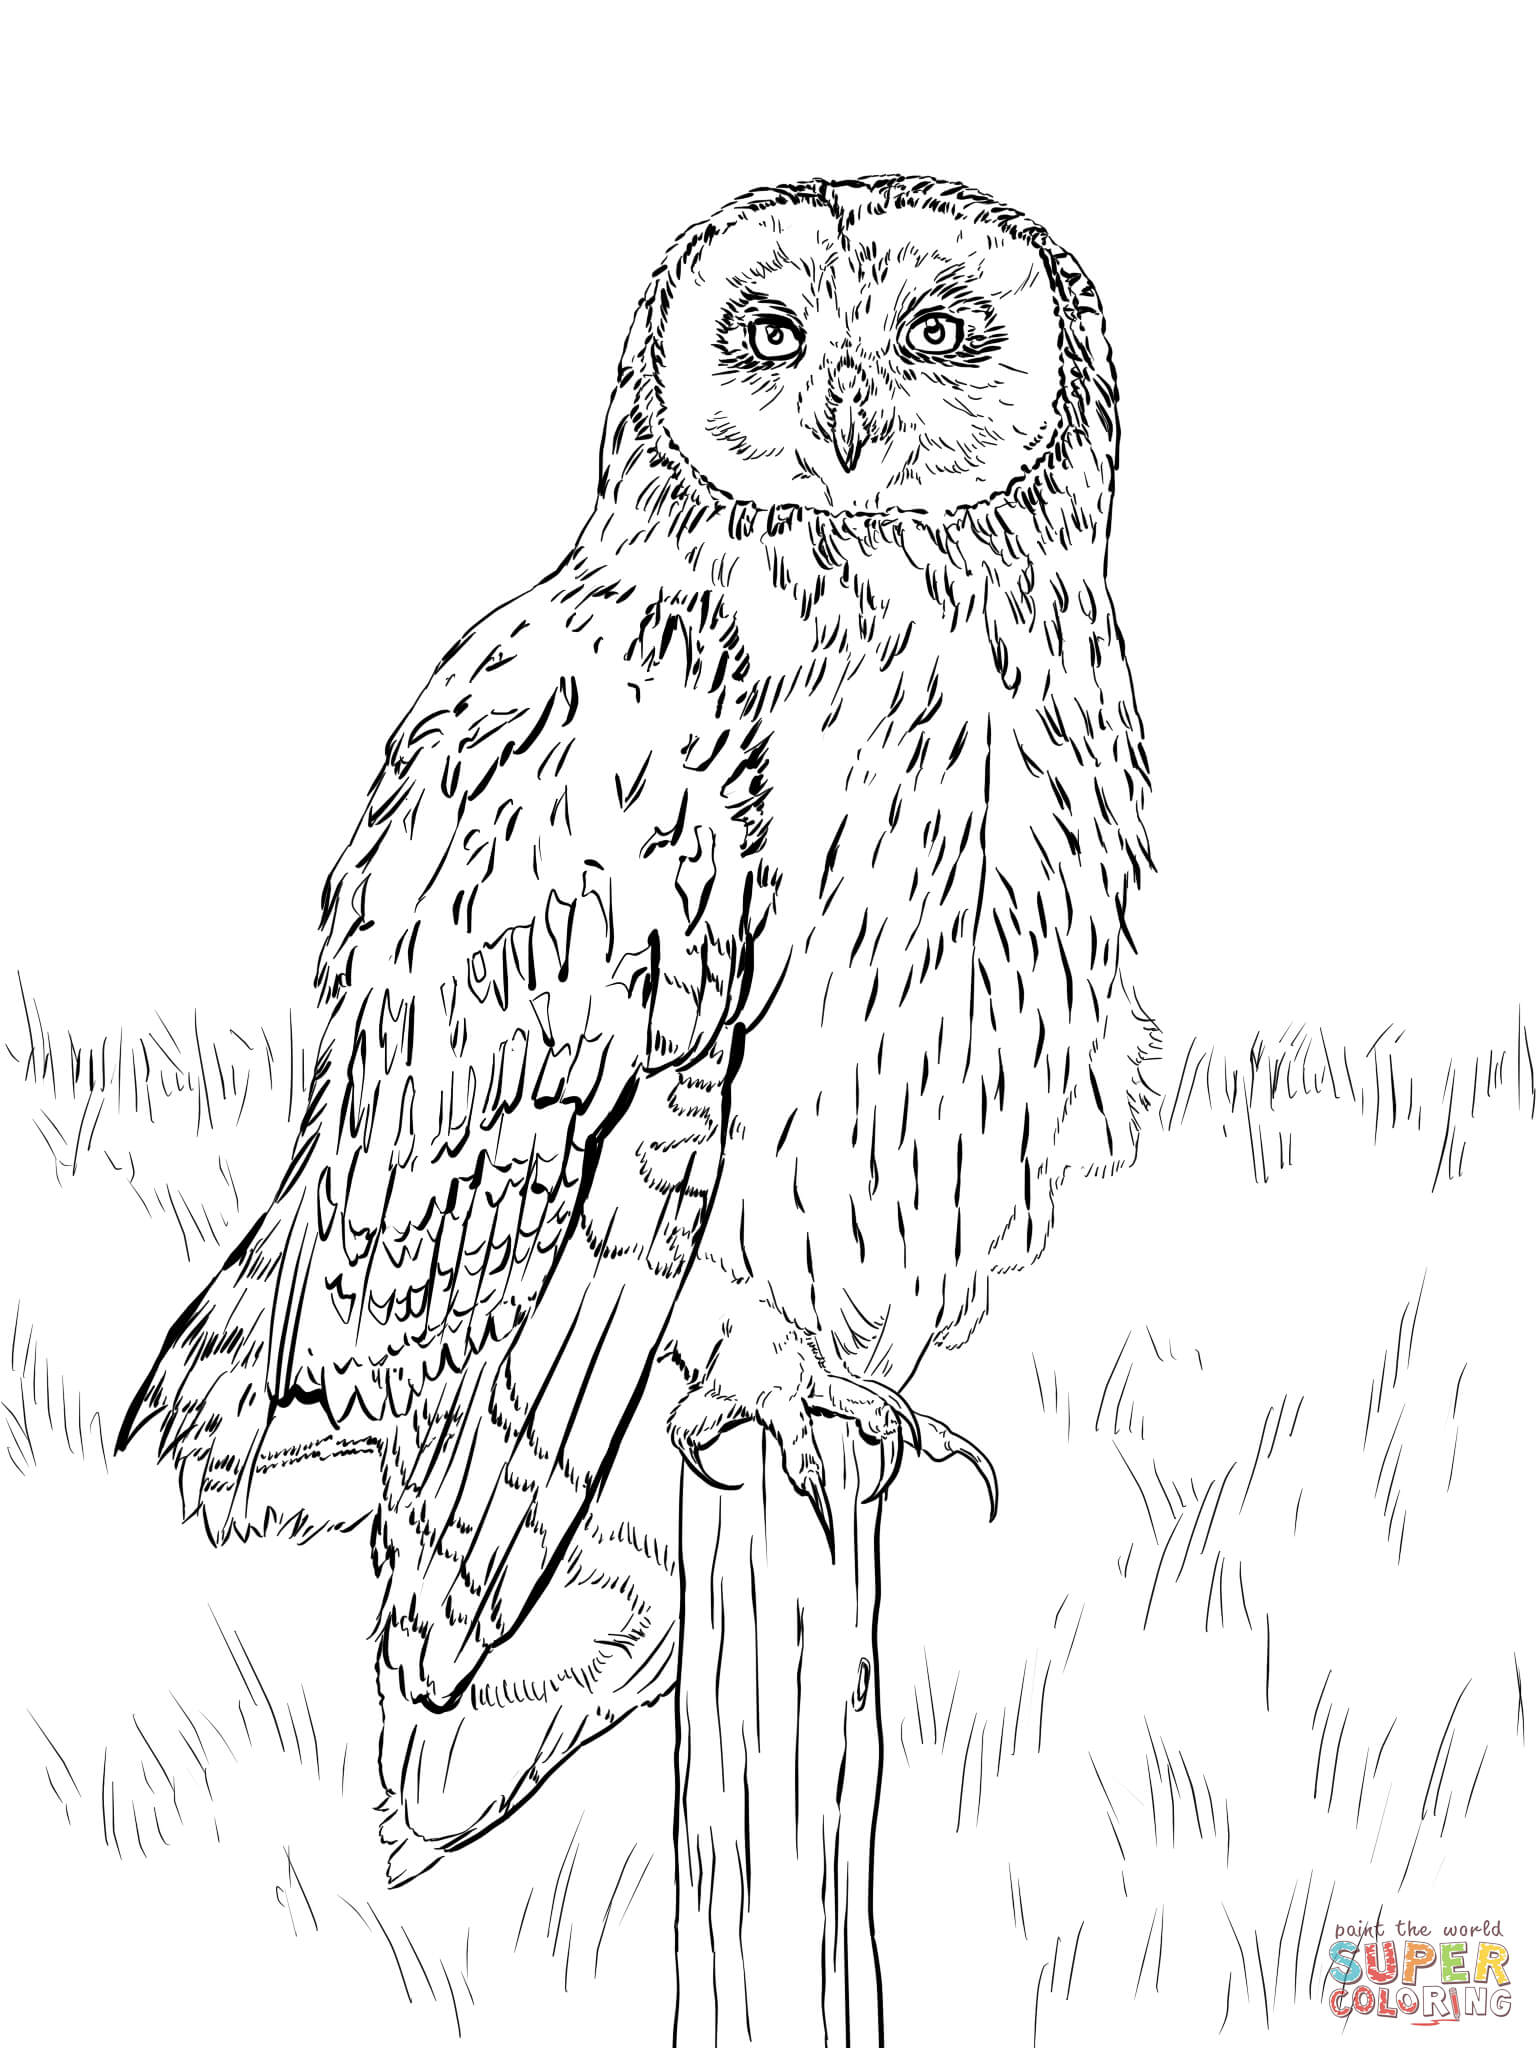 Eagle-owl coloring #11, Download drawings